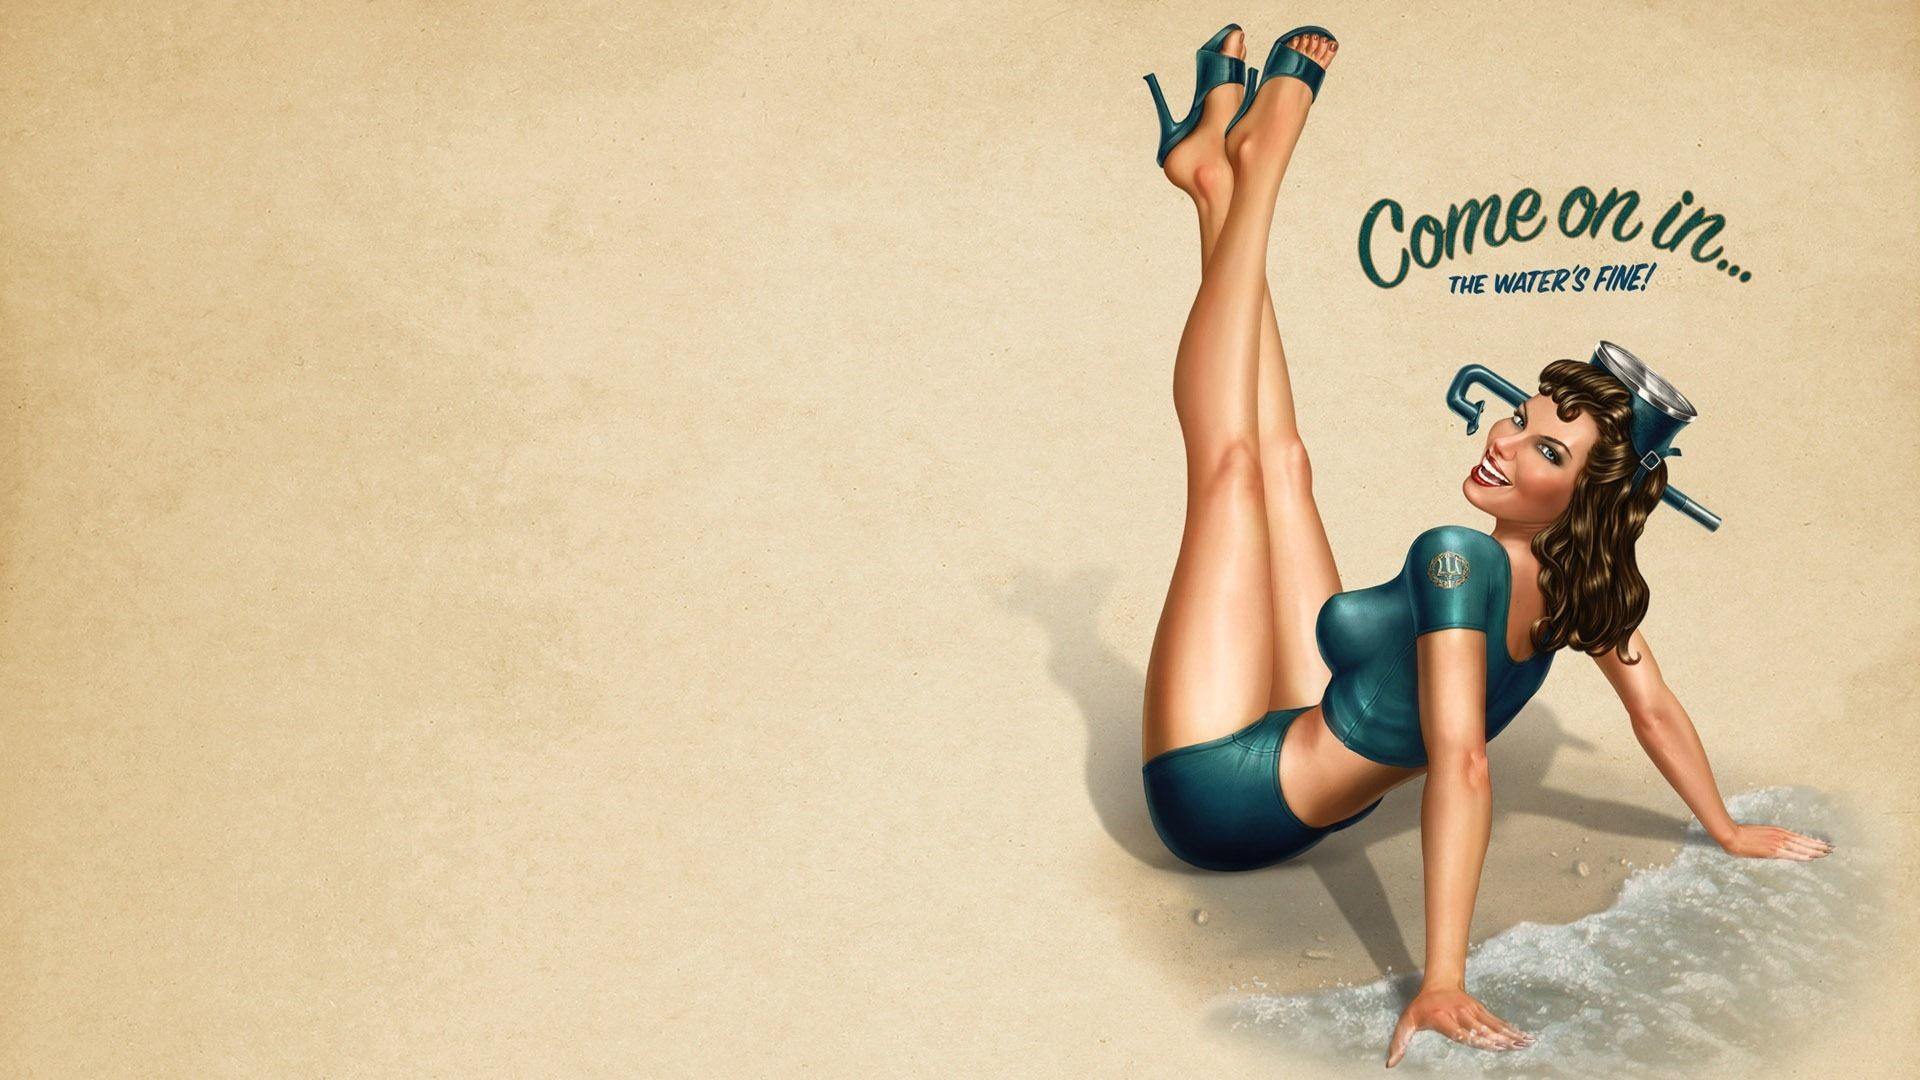 High Resolution Vintage Girl Pin Up Wallpaper HD 10 Full Size .